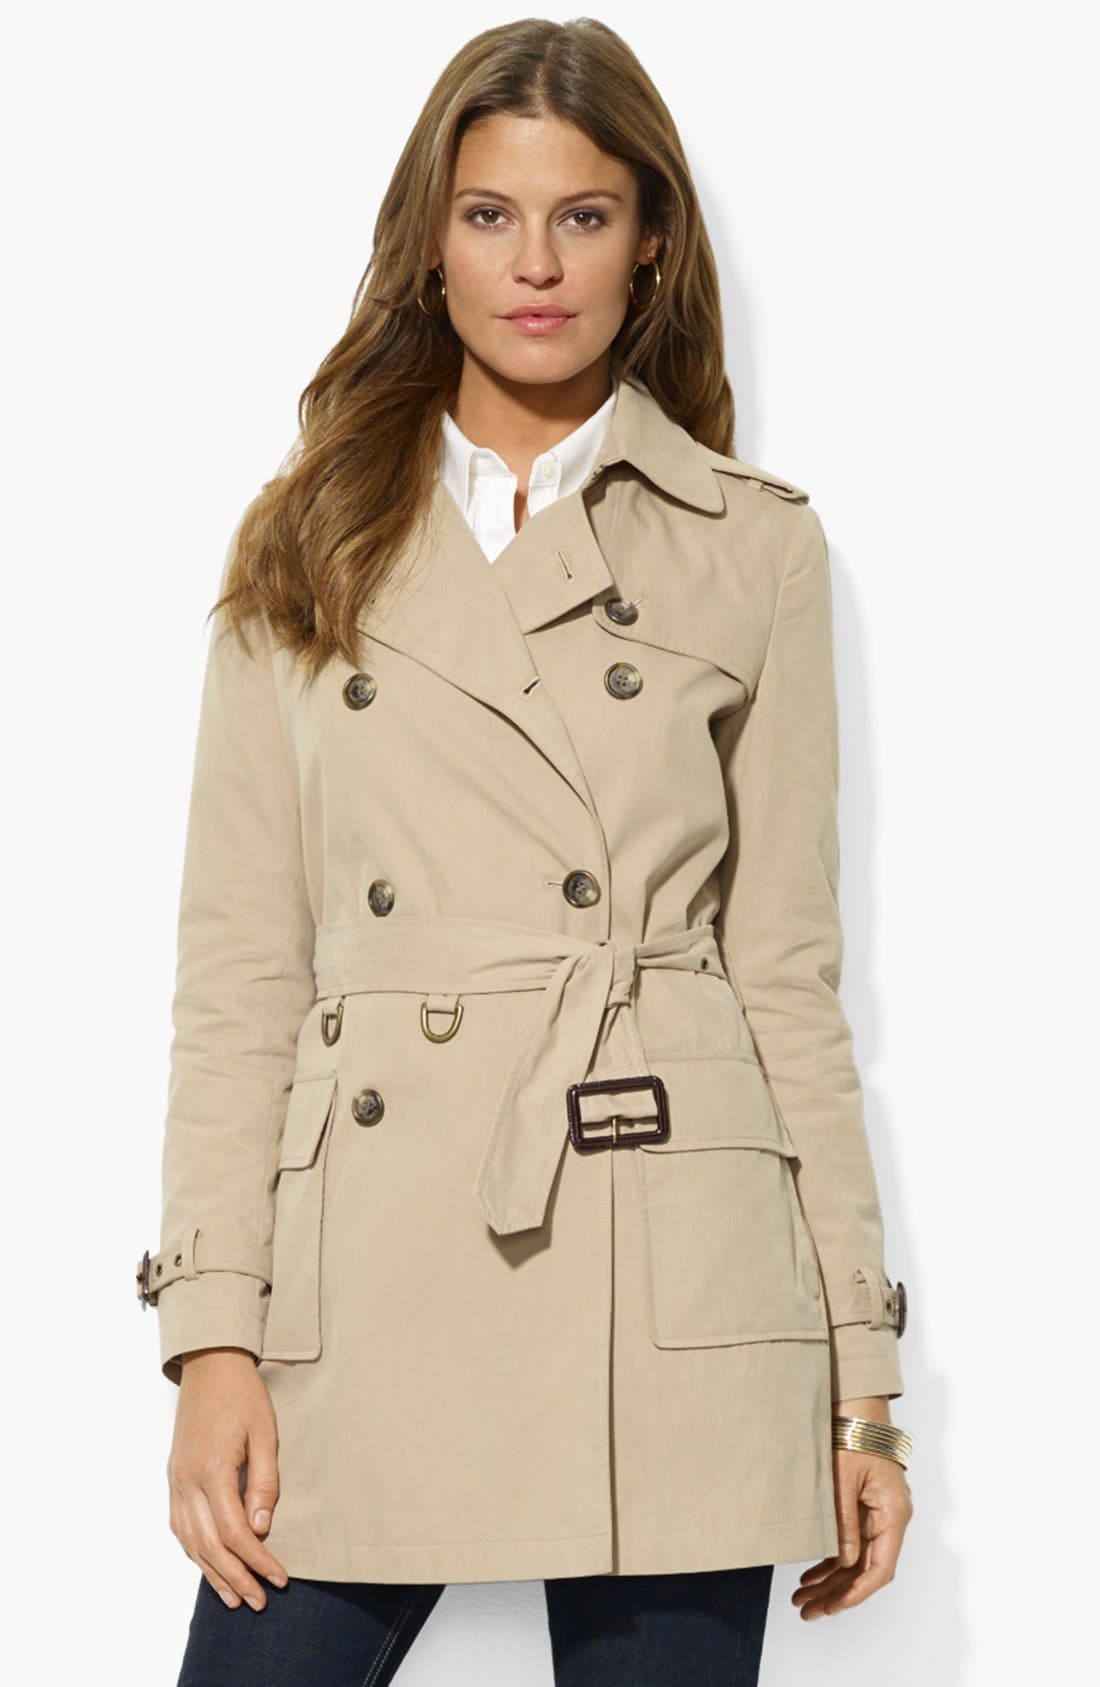 Alternate Image 1 Selected - Lauren Ralph Lauren Double Breasted Trench Coat